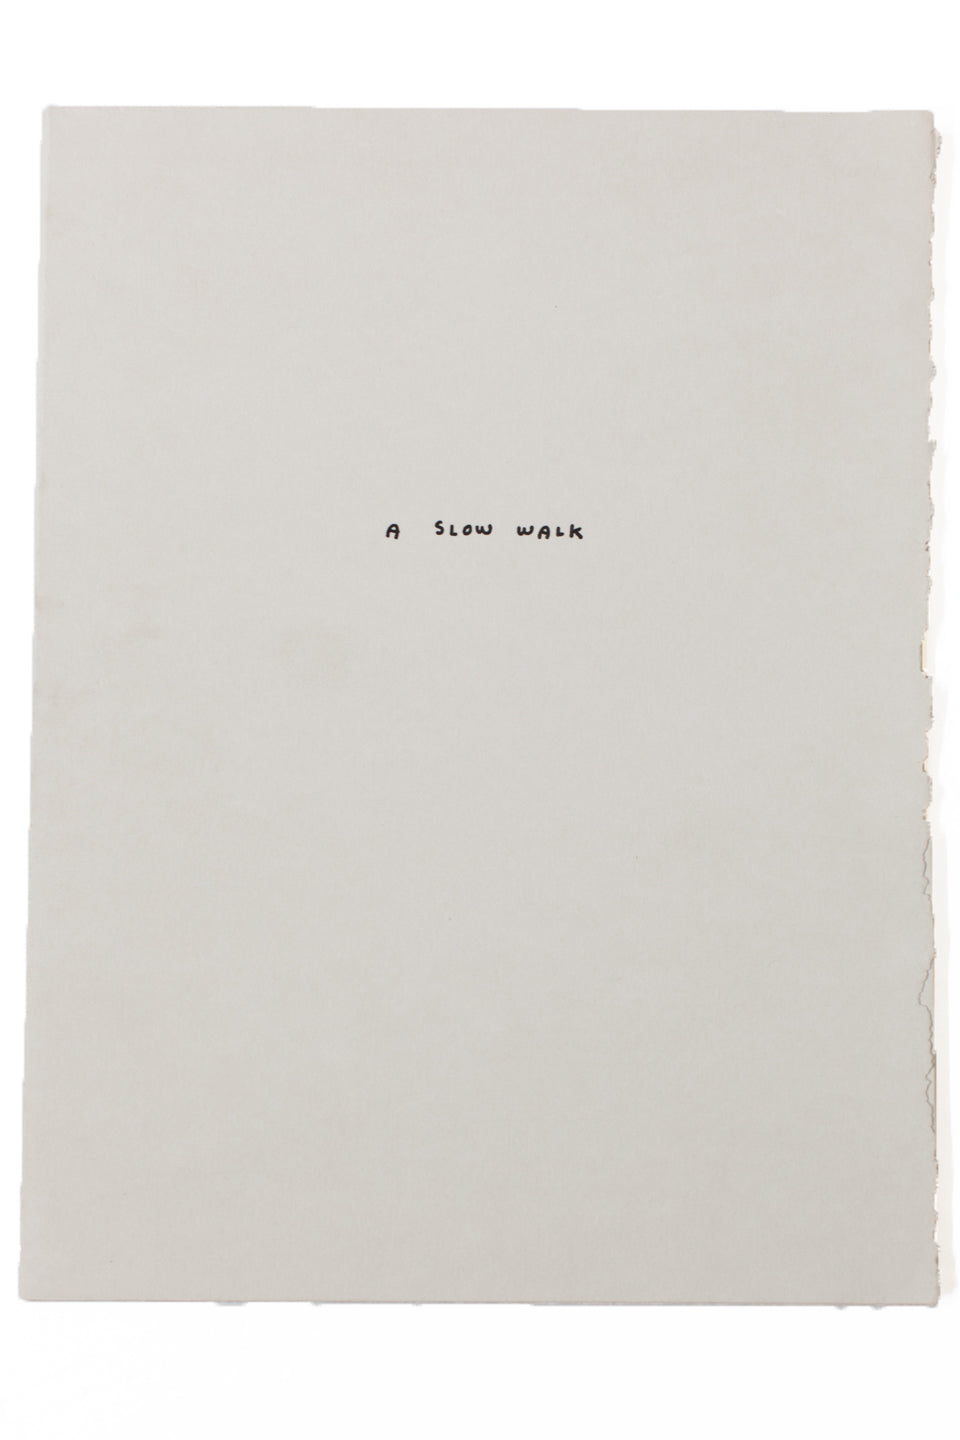 A SLOW WALK | A Letterpress Portfolio by Jason Polon